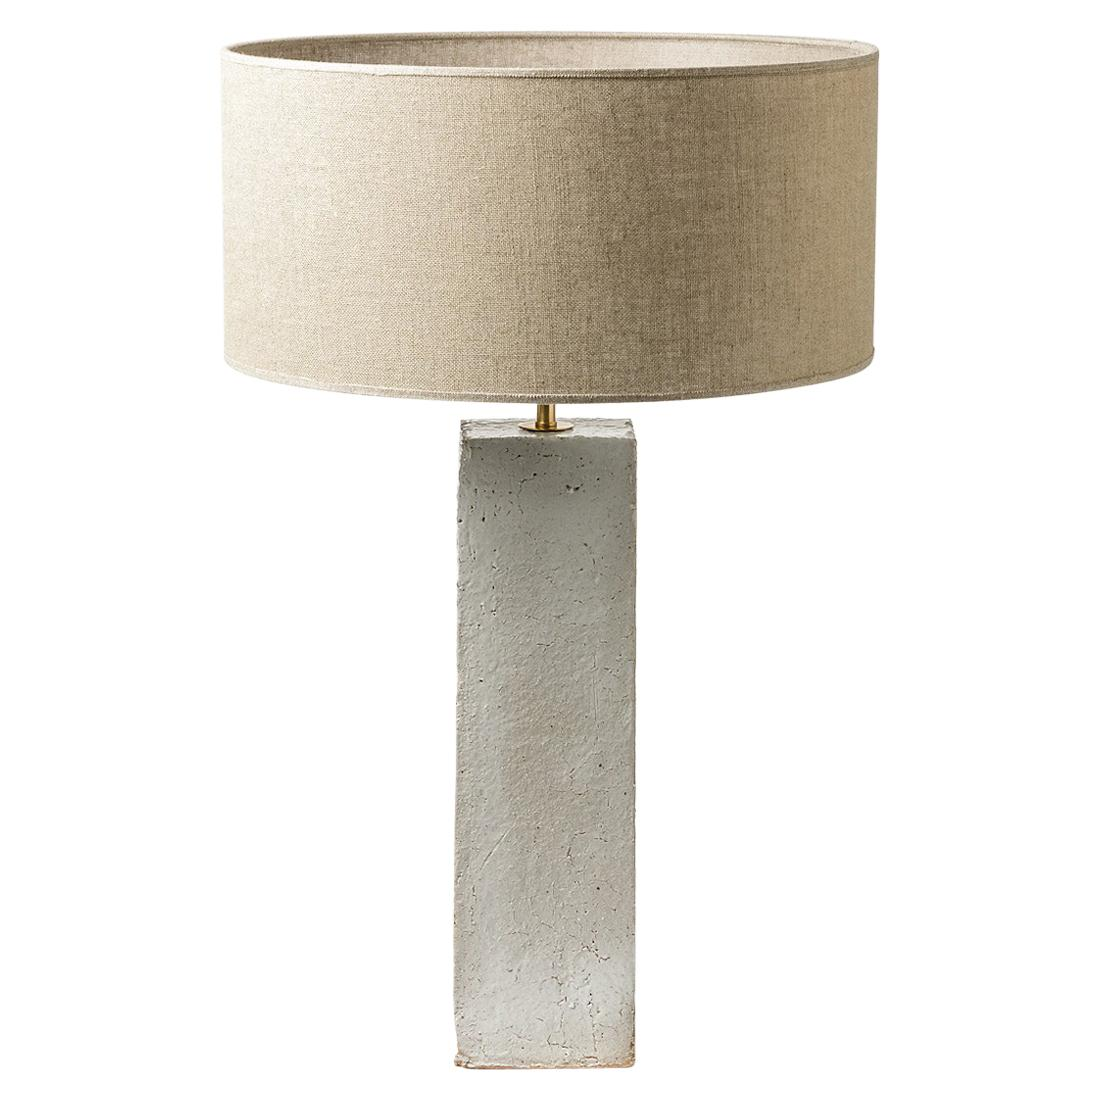 White Ceramic Table Lamp 20th Century Design French Potters  Lighting